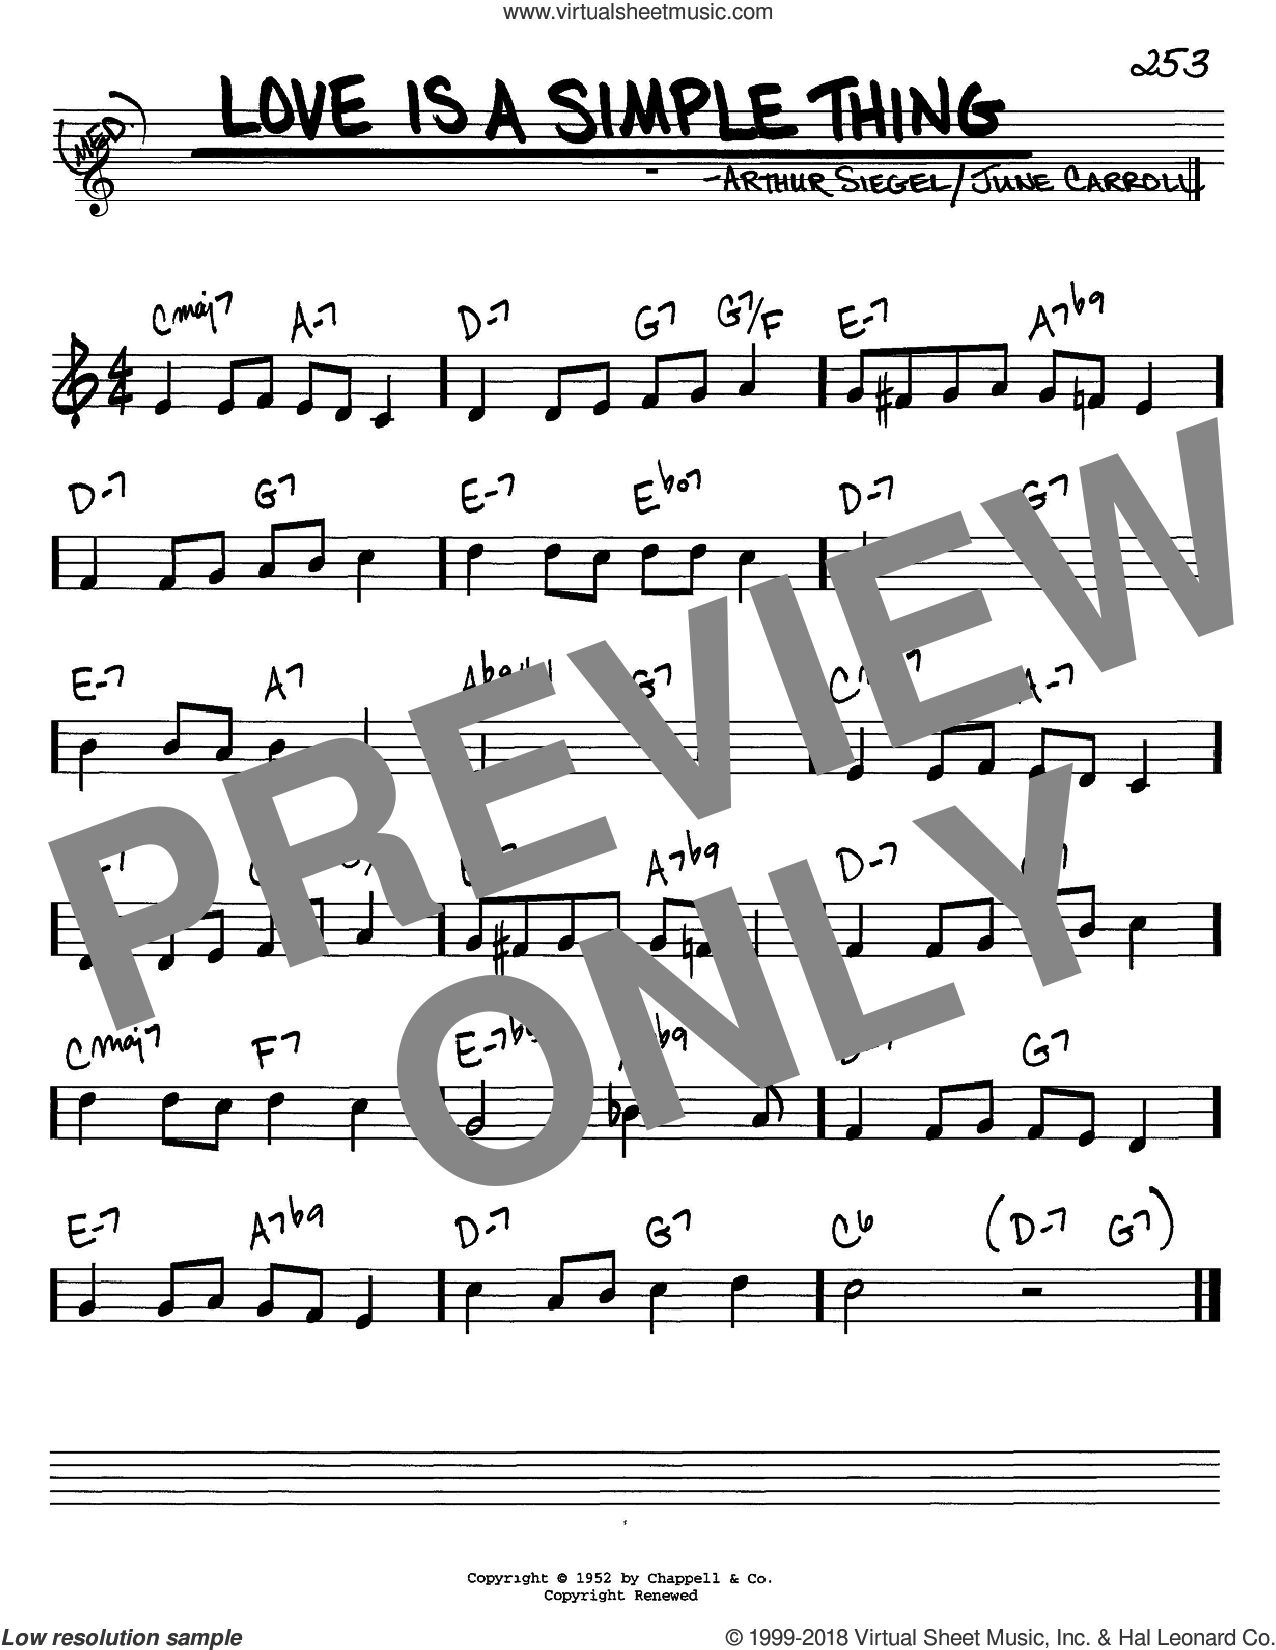 Love Is A Simple Thing sheet music for voice and other instruments (C) by Arthur Siegel